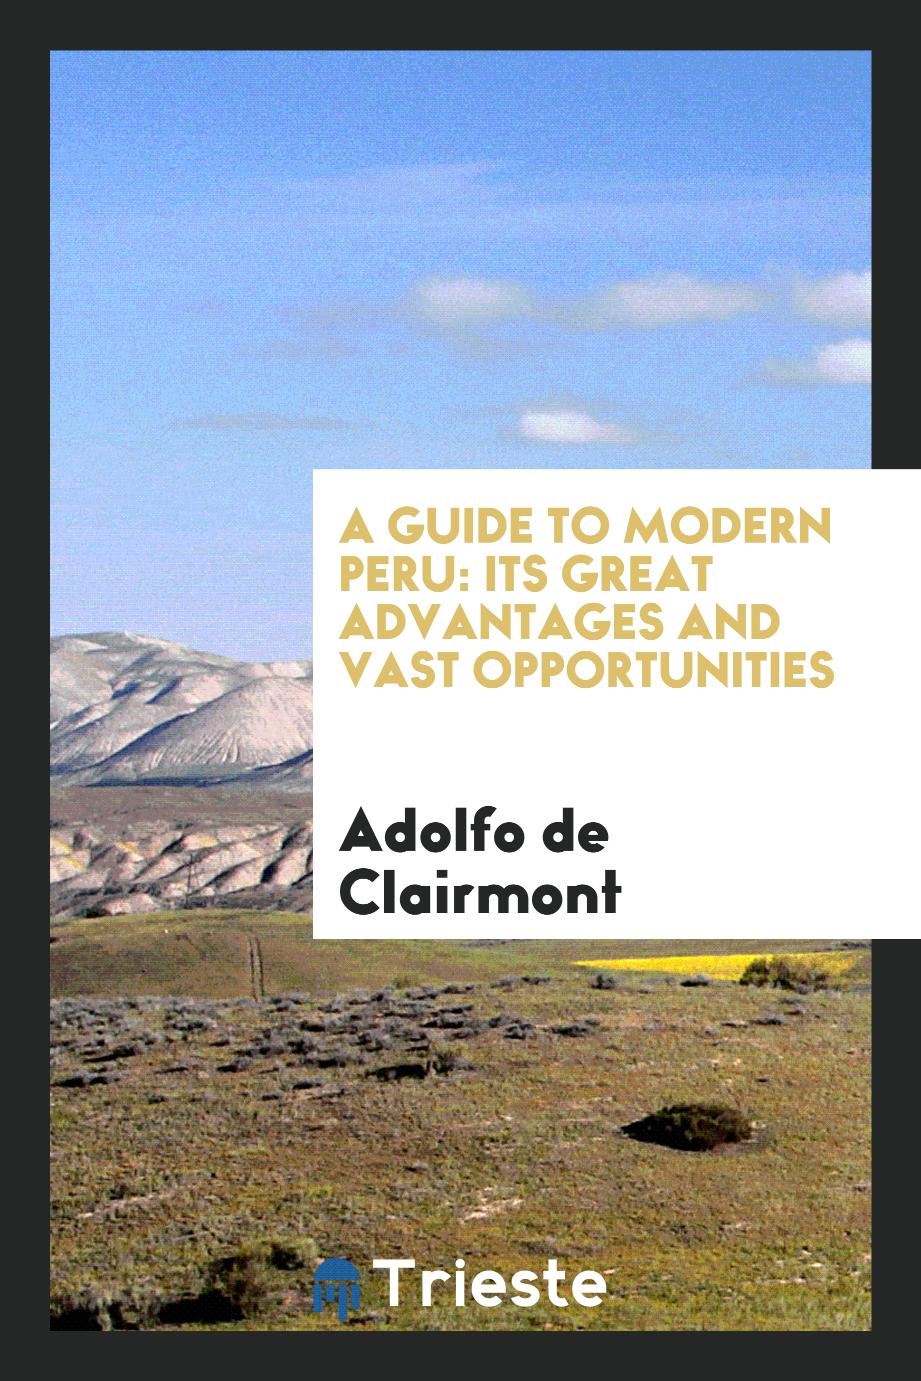 A guide to modern Peru: its great advantages and vast opportunities